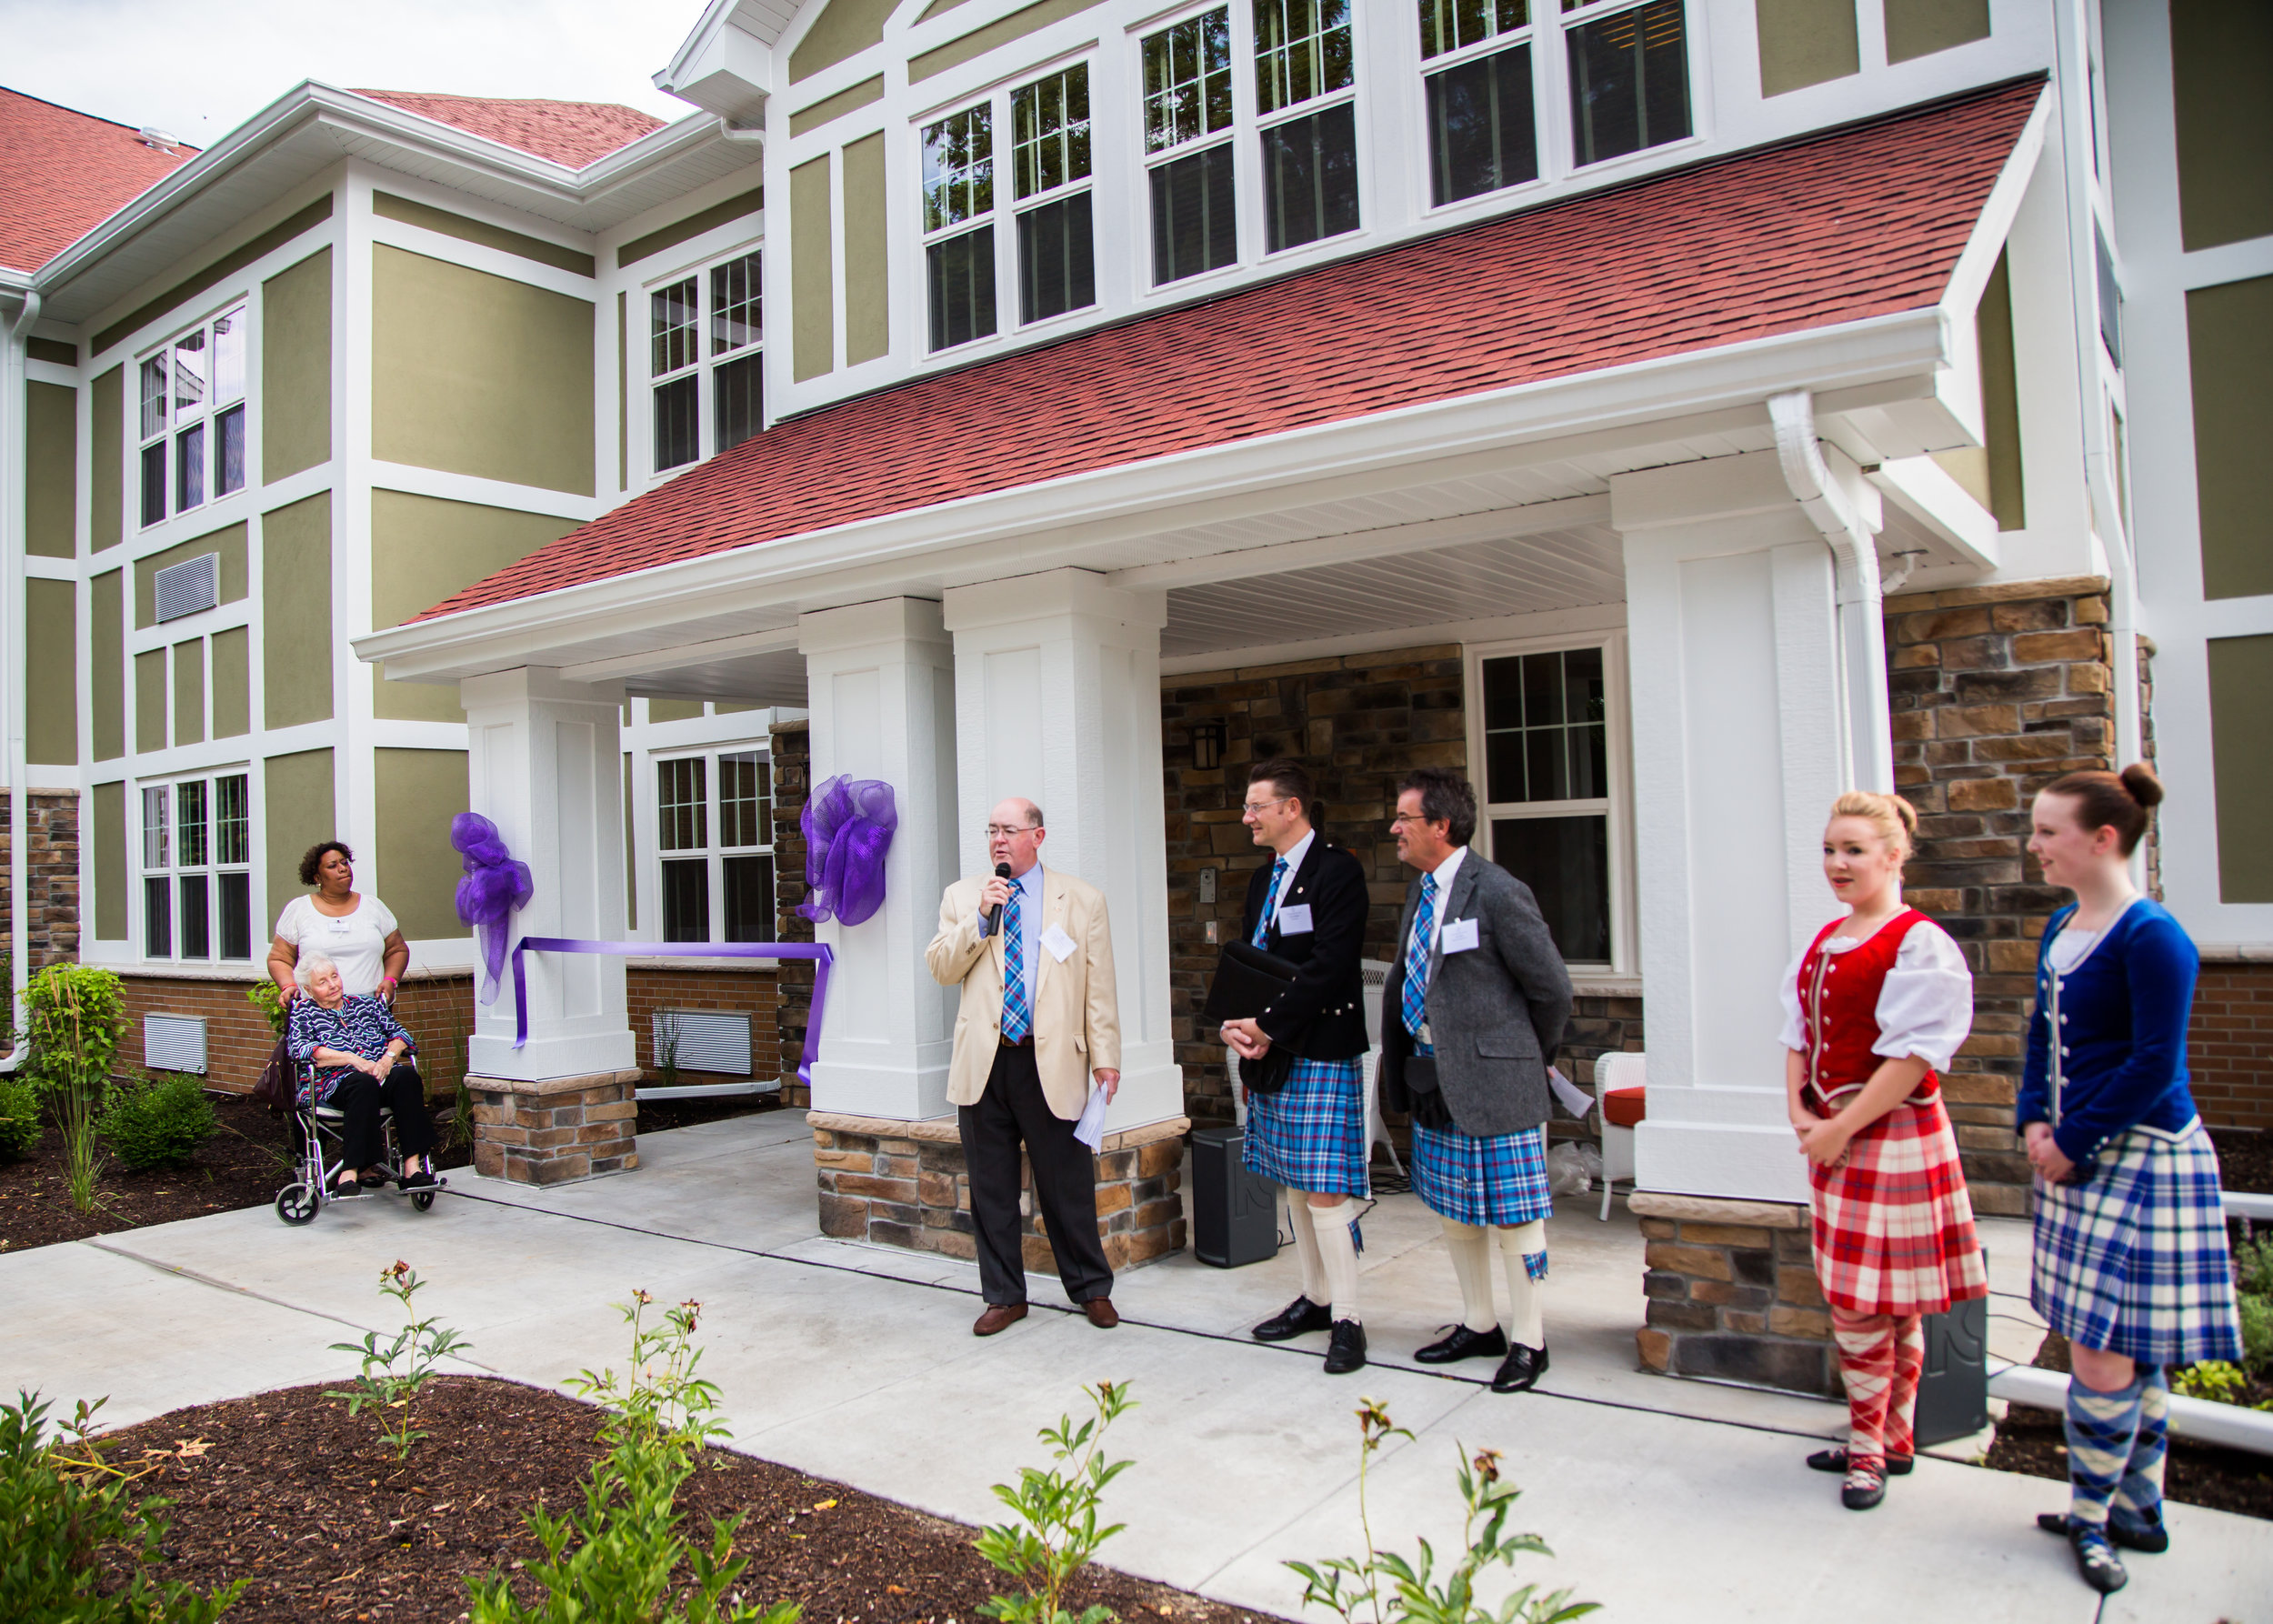 160713-The-Caledonian-House-Ribbon-Cutting-011.jpg